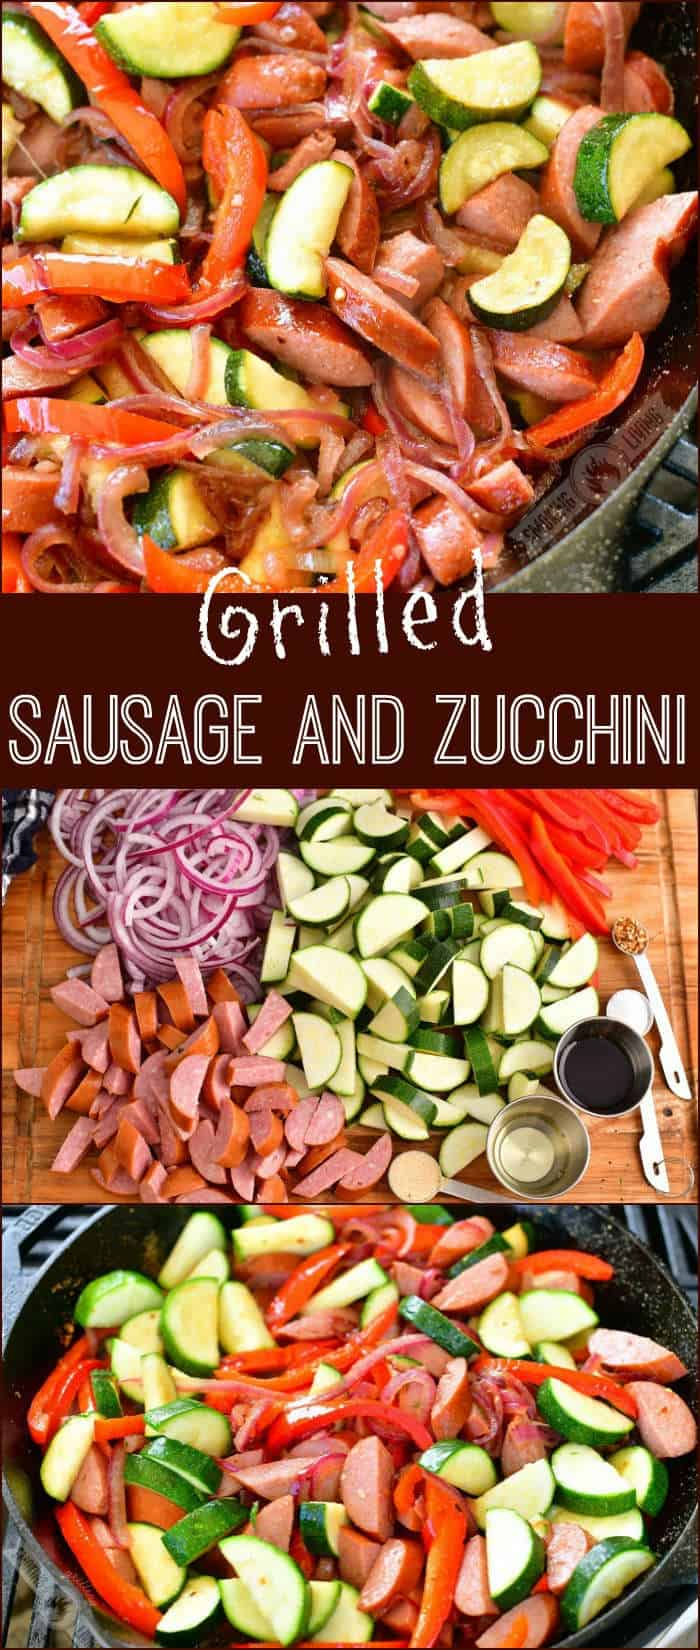 collage of three images of cooked sausage and zucchini, ingredients on the cutting board, and sausage and vegetables mixed in the cast iron skillet but not cooked